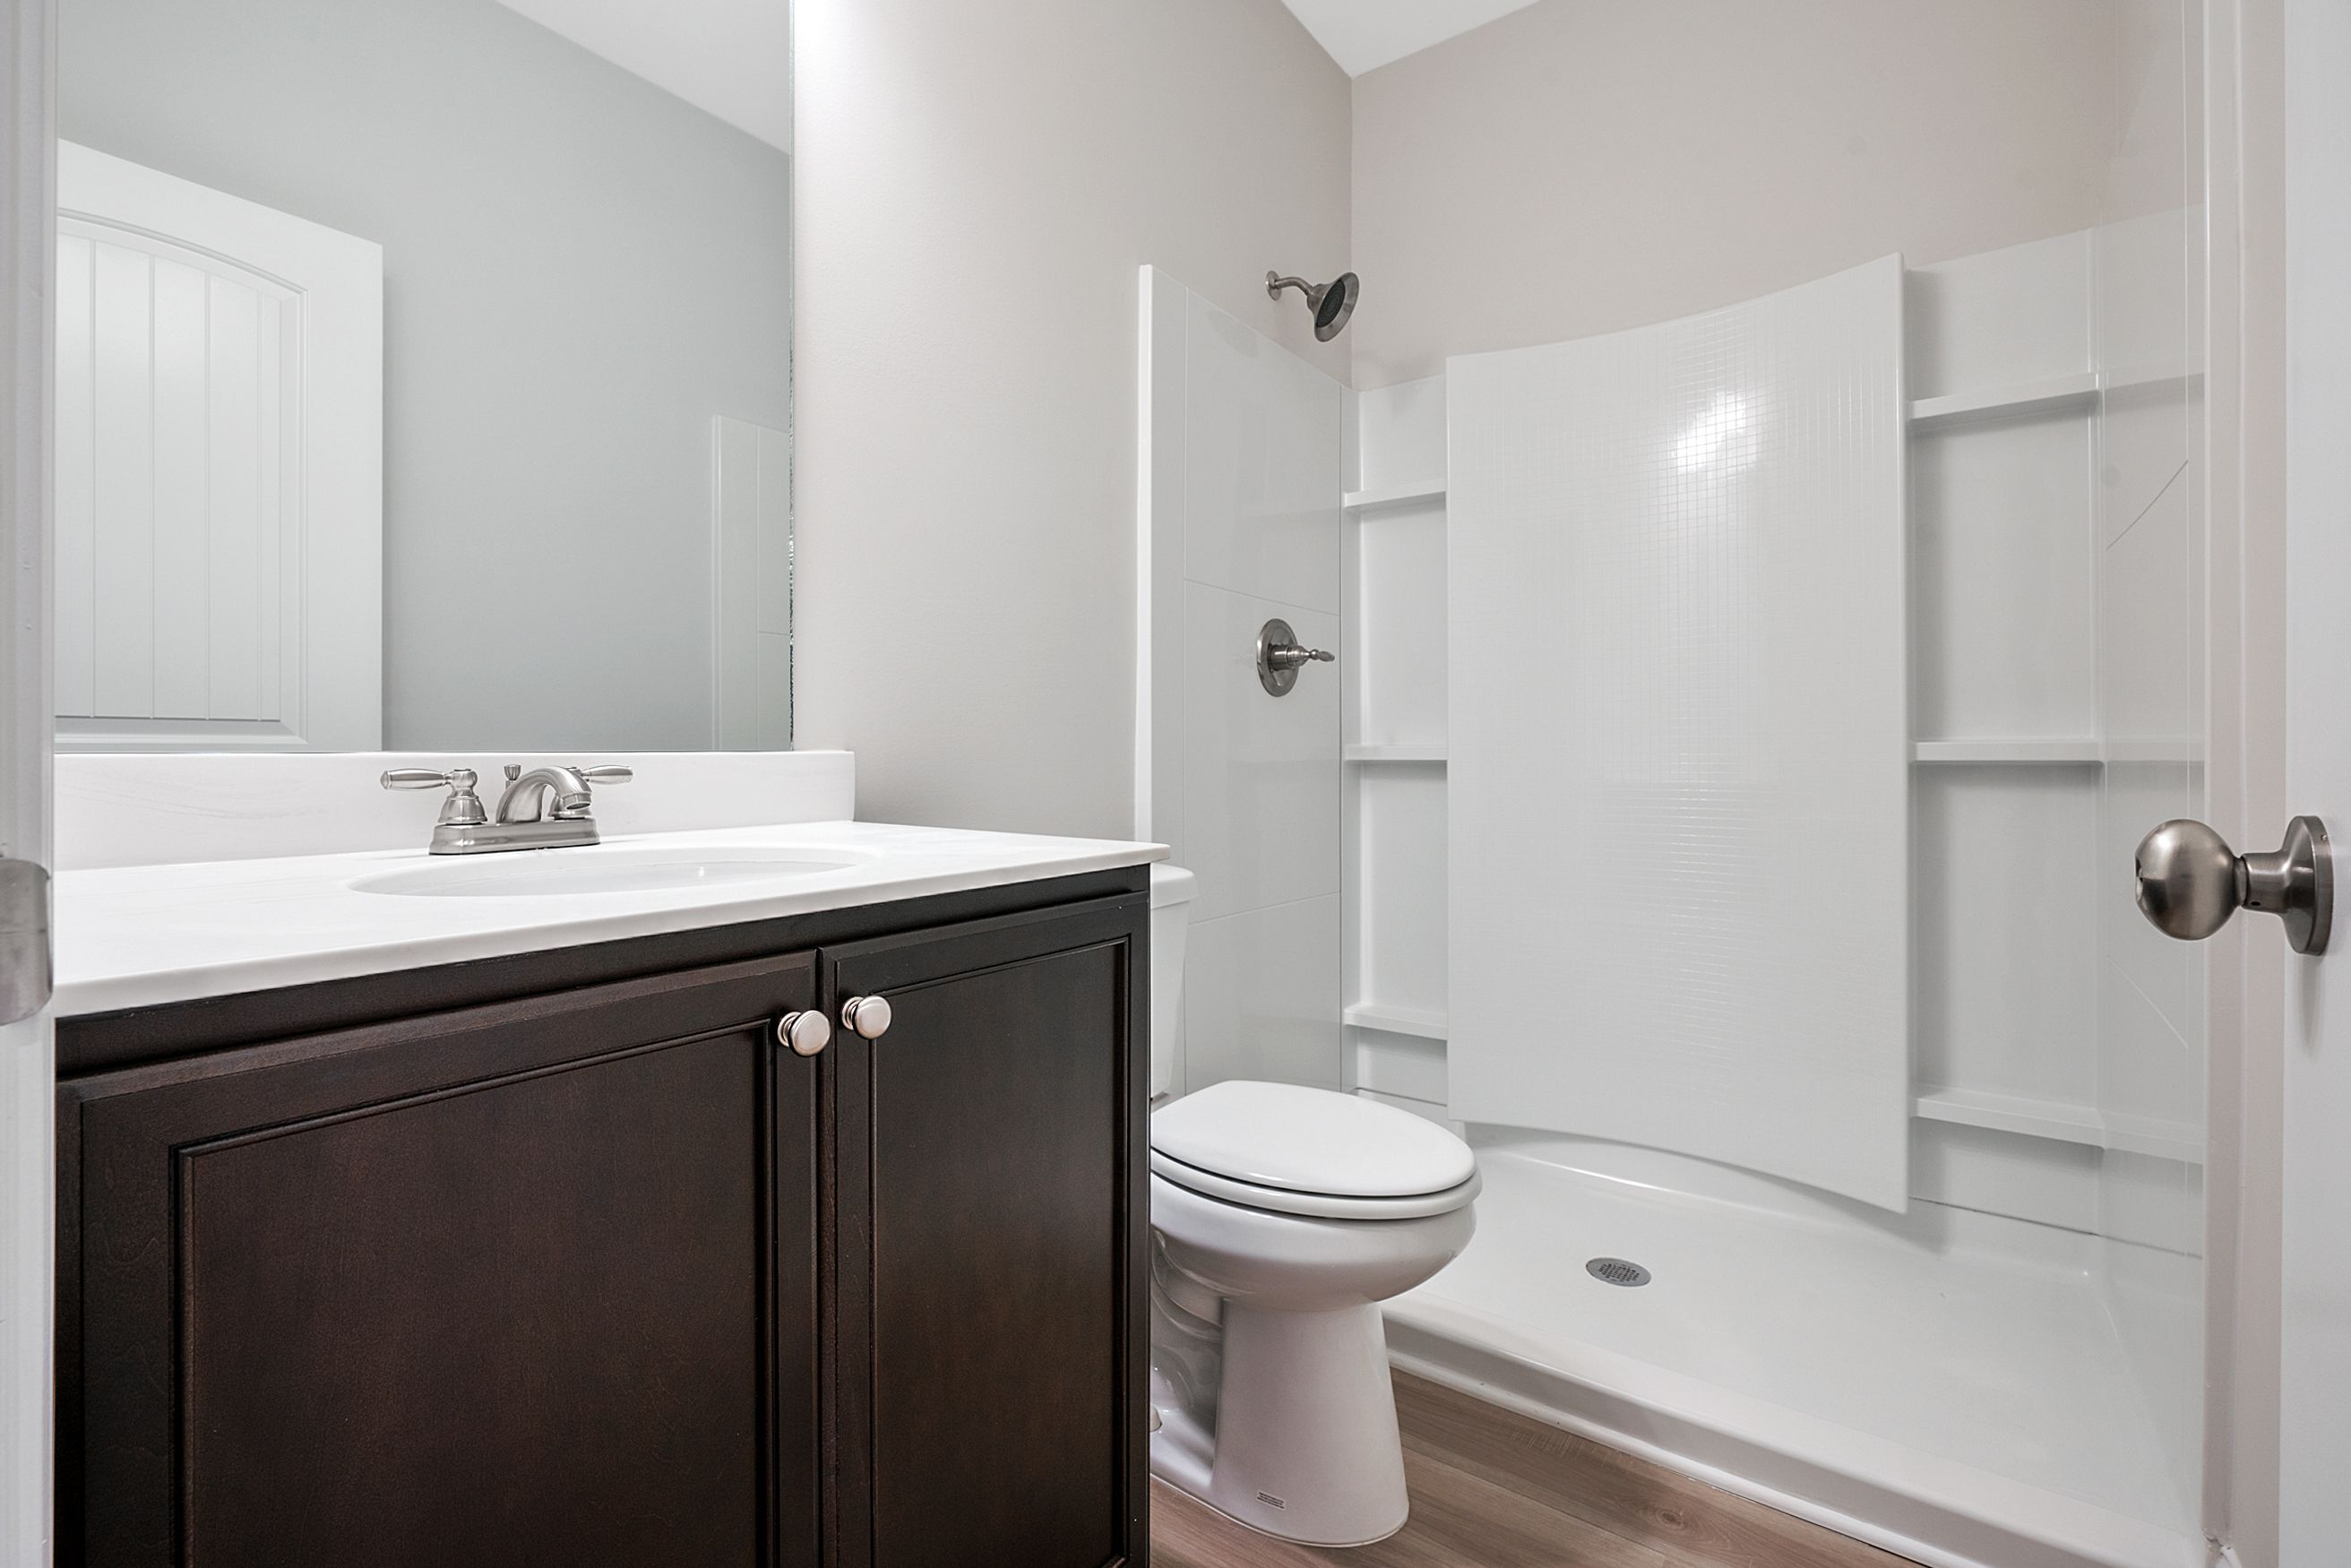 Bathroom featured in the Chamblee (Active Adult) By Artisan Built Communities in Atlanta, GA